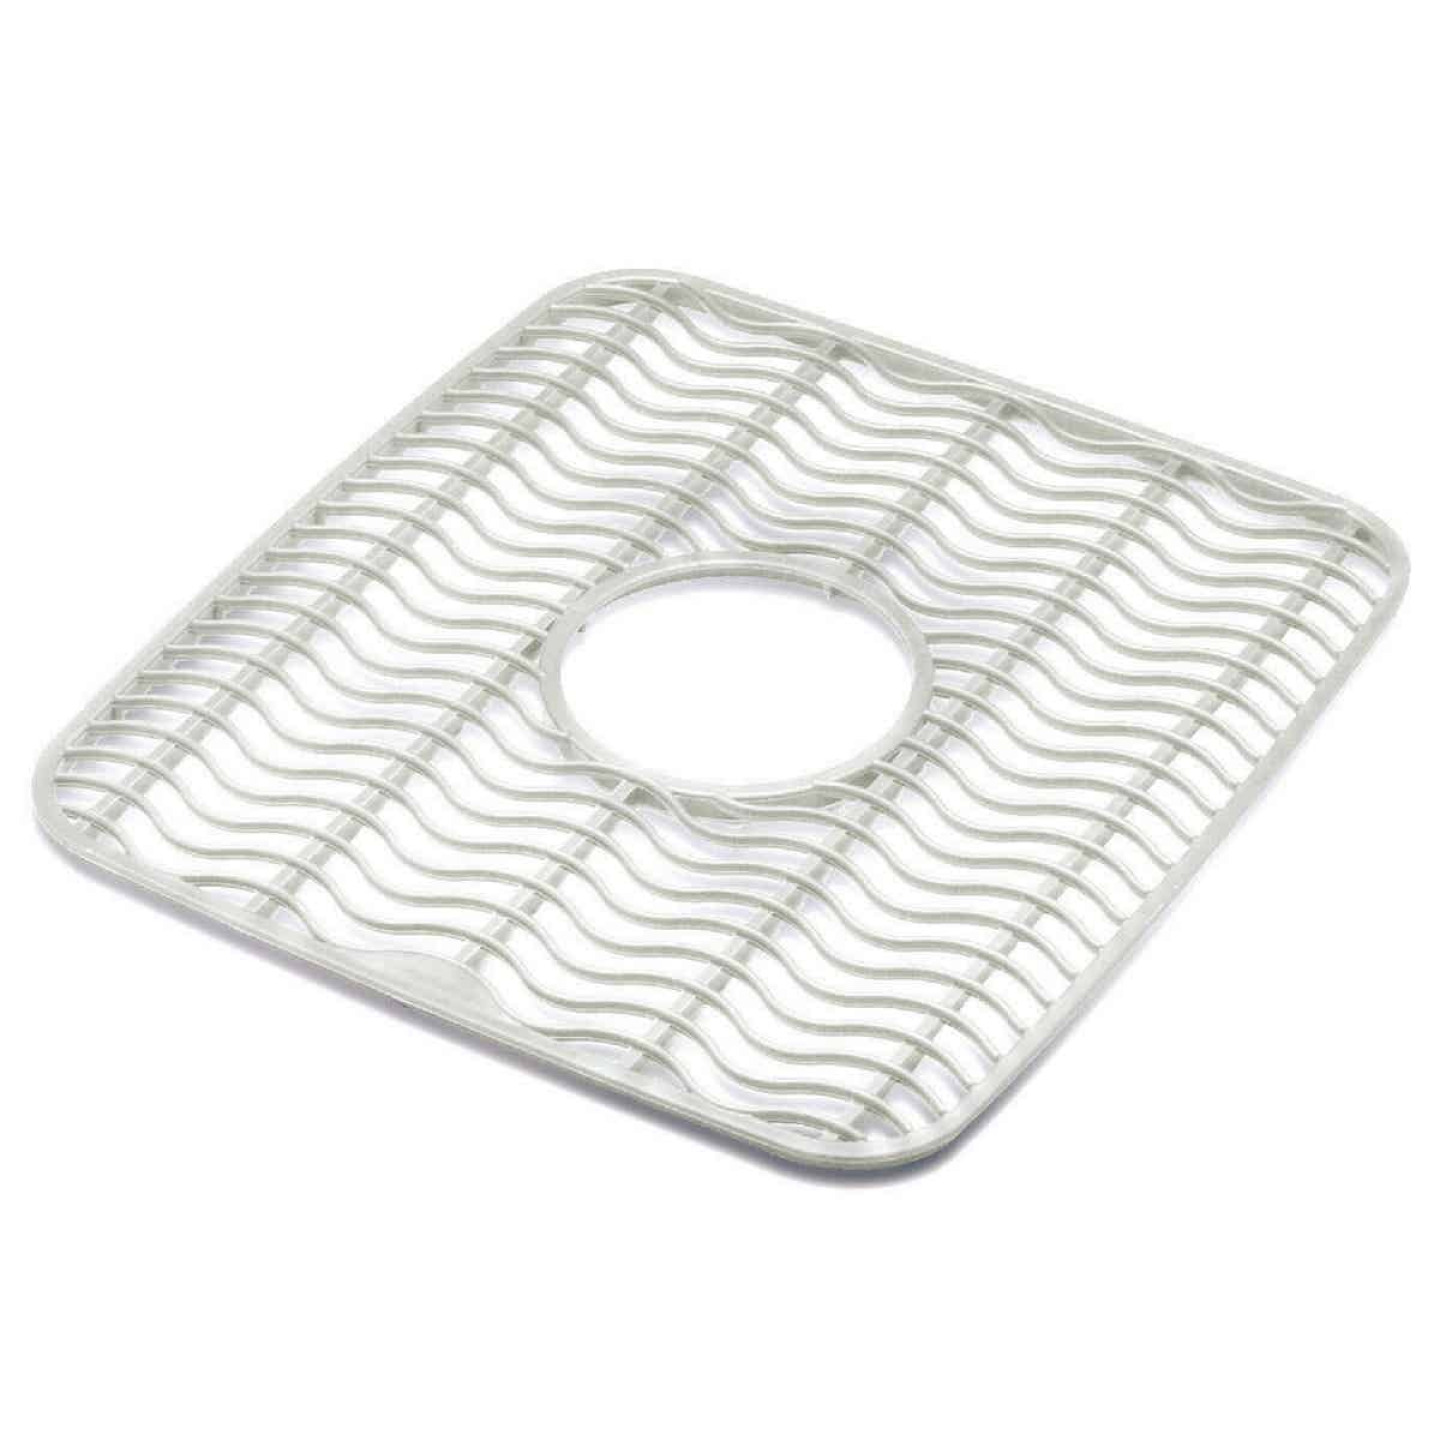 Rubbermaid 11.5 In. x 12.5 In. Clear Sink Mat Protector Image 1